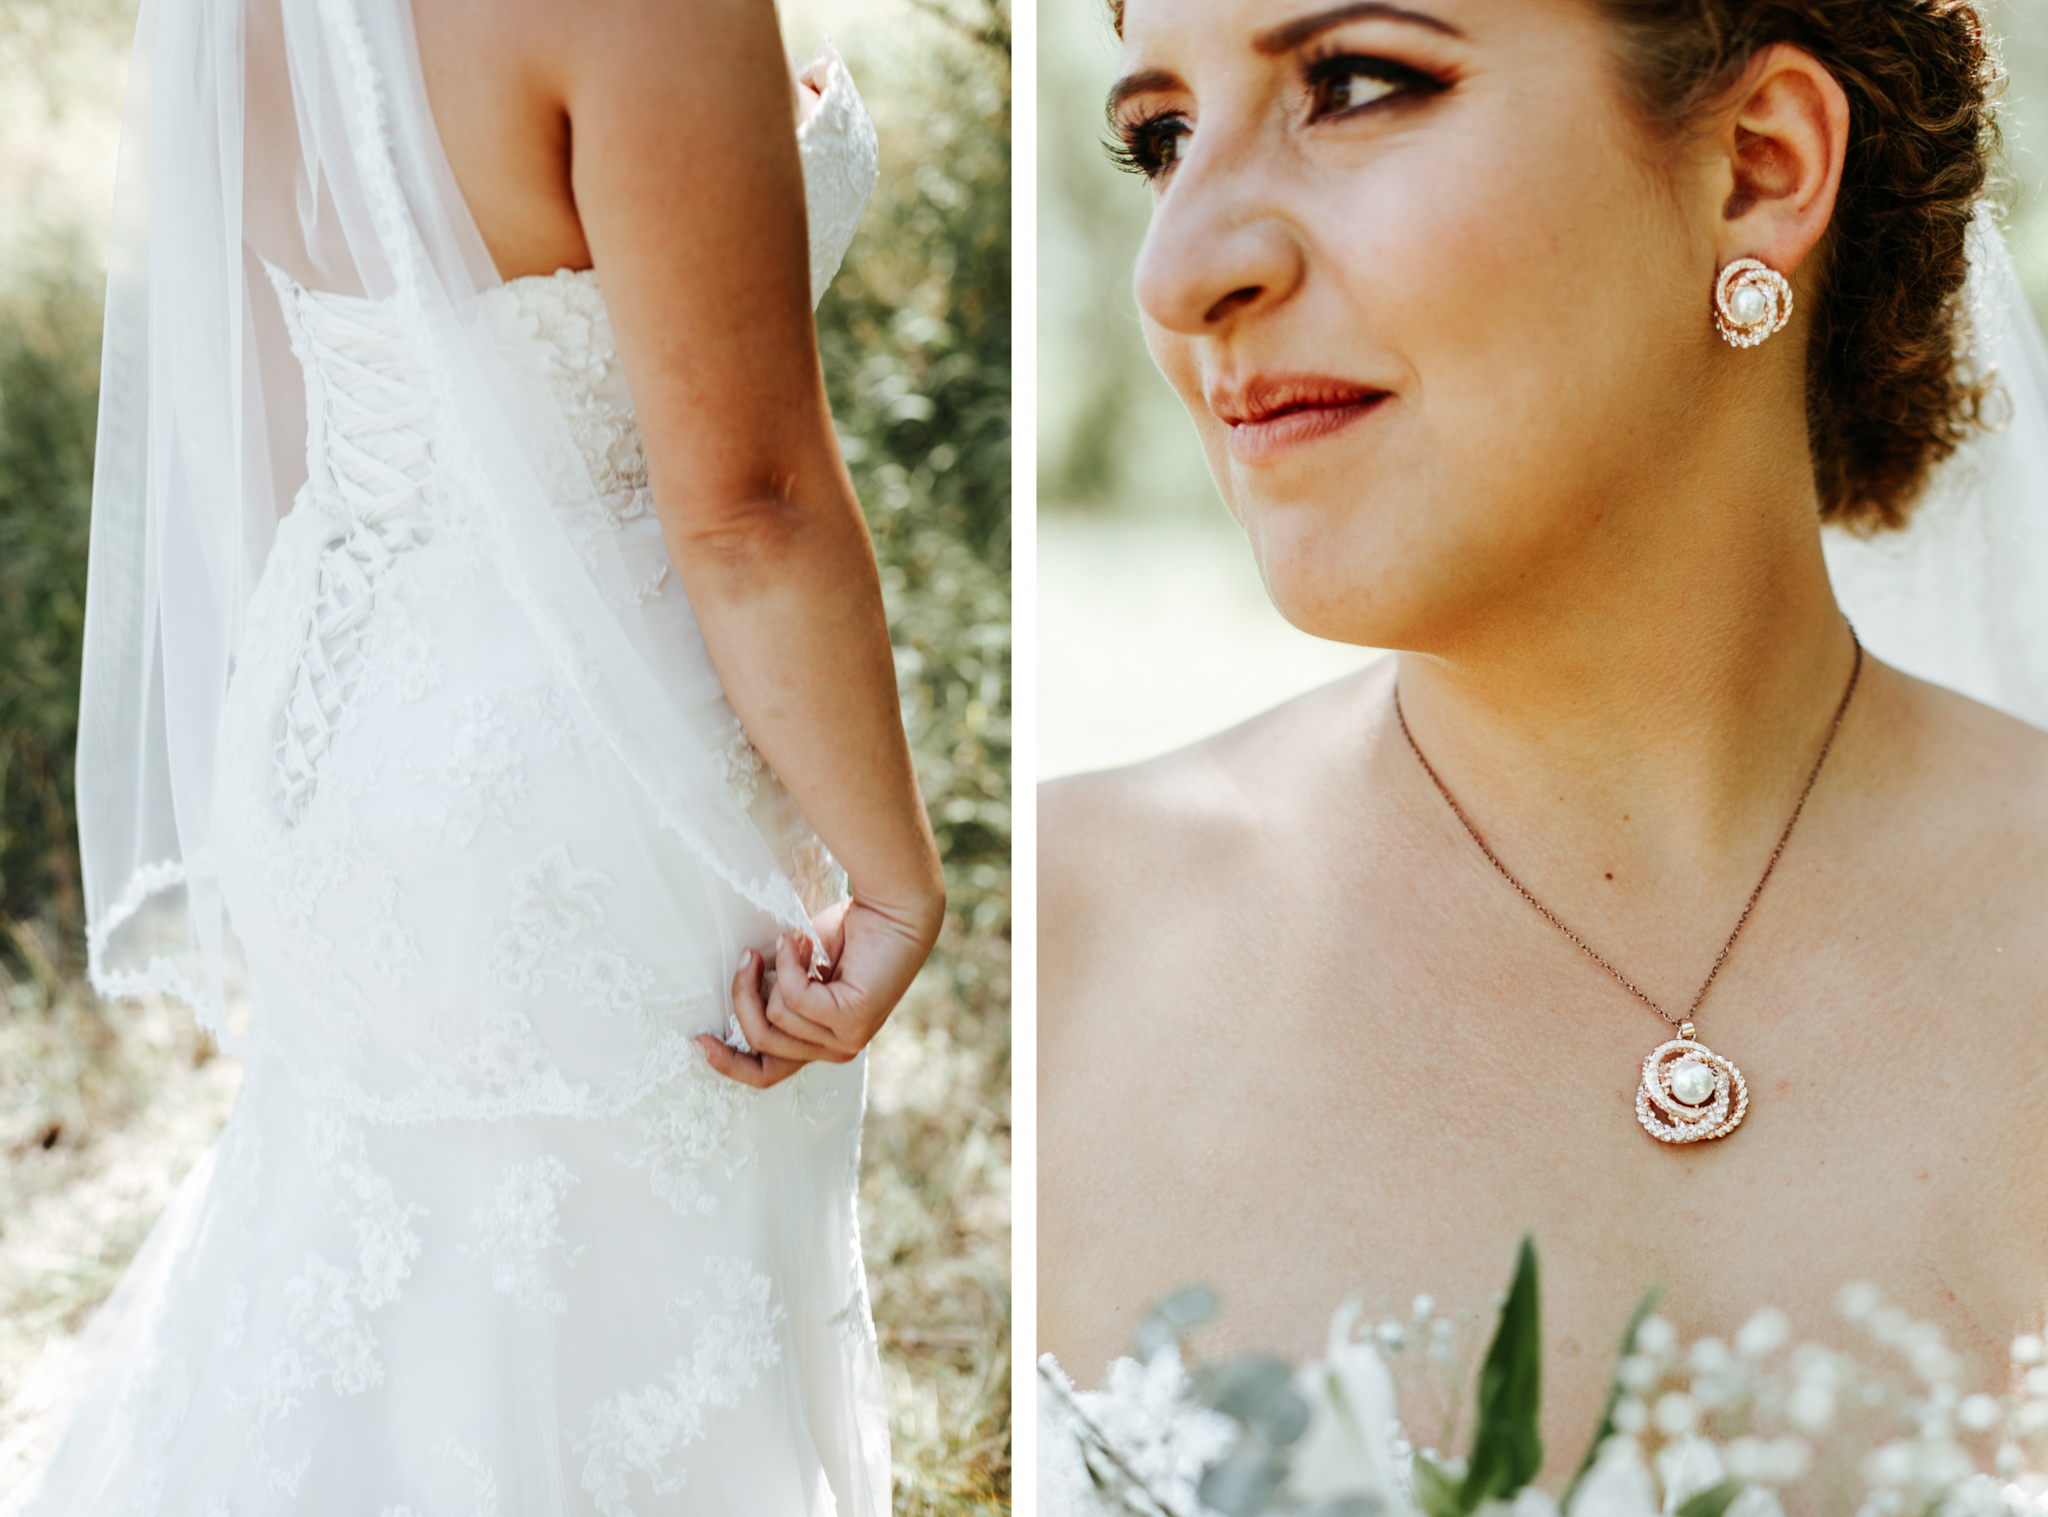 lethbridge-wedding-photographer-love-and-be-loved-photography-trent-danielle-galt-reception-picture-image-photo-135.jpg